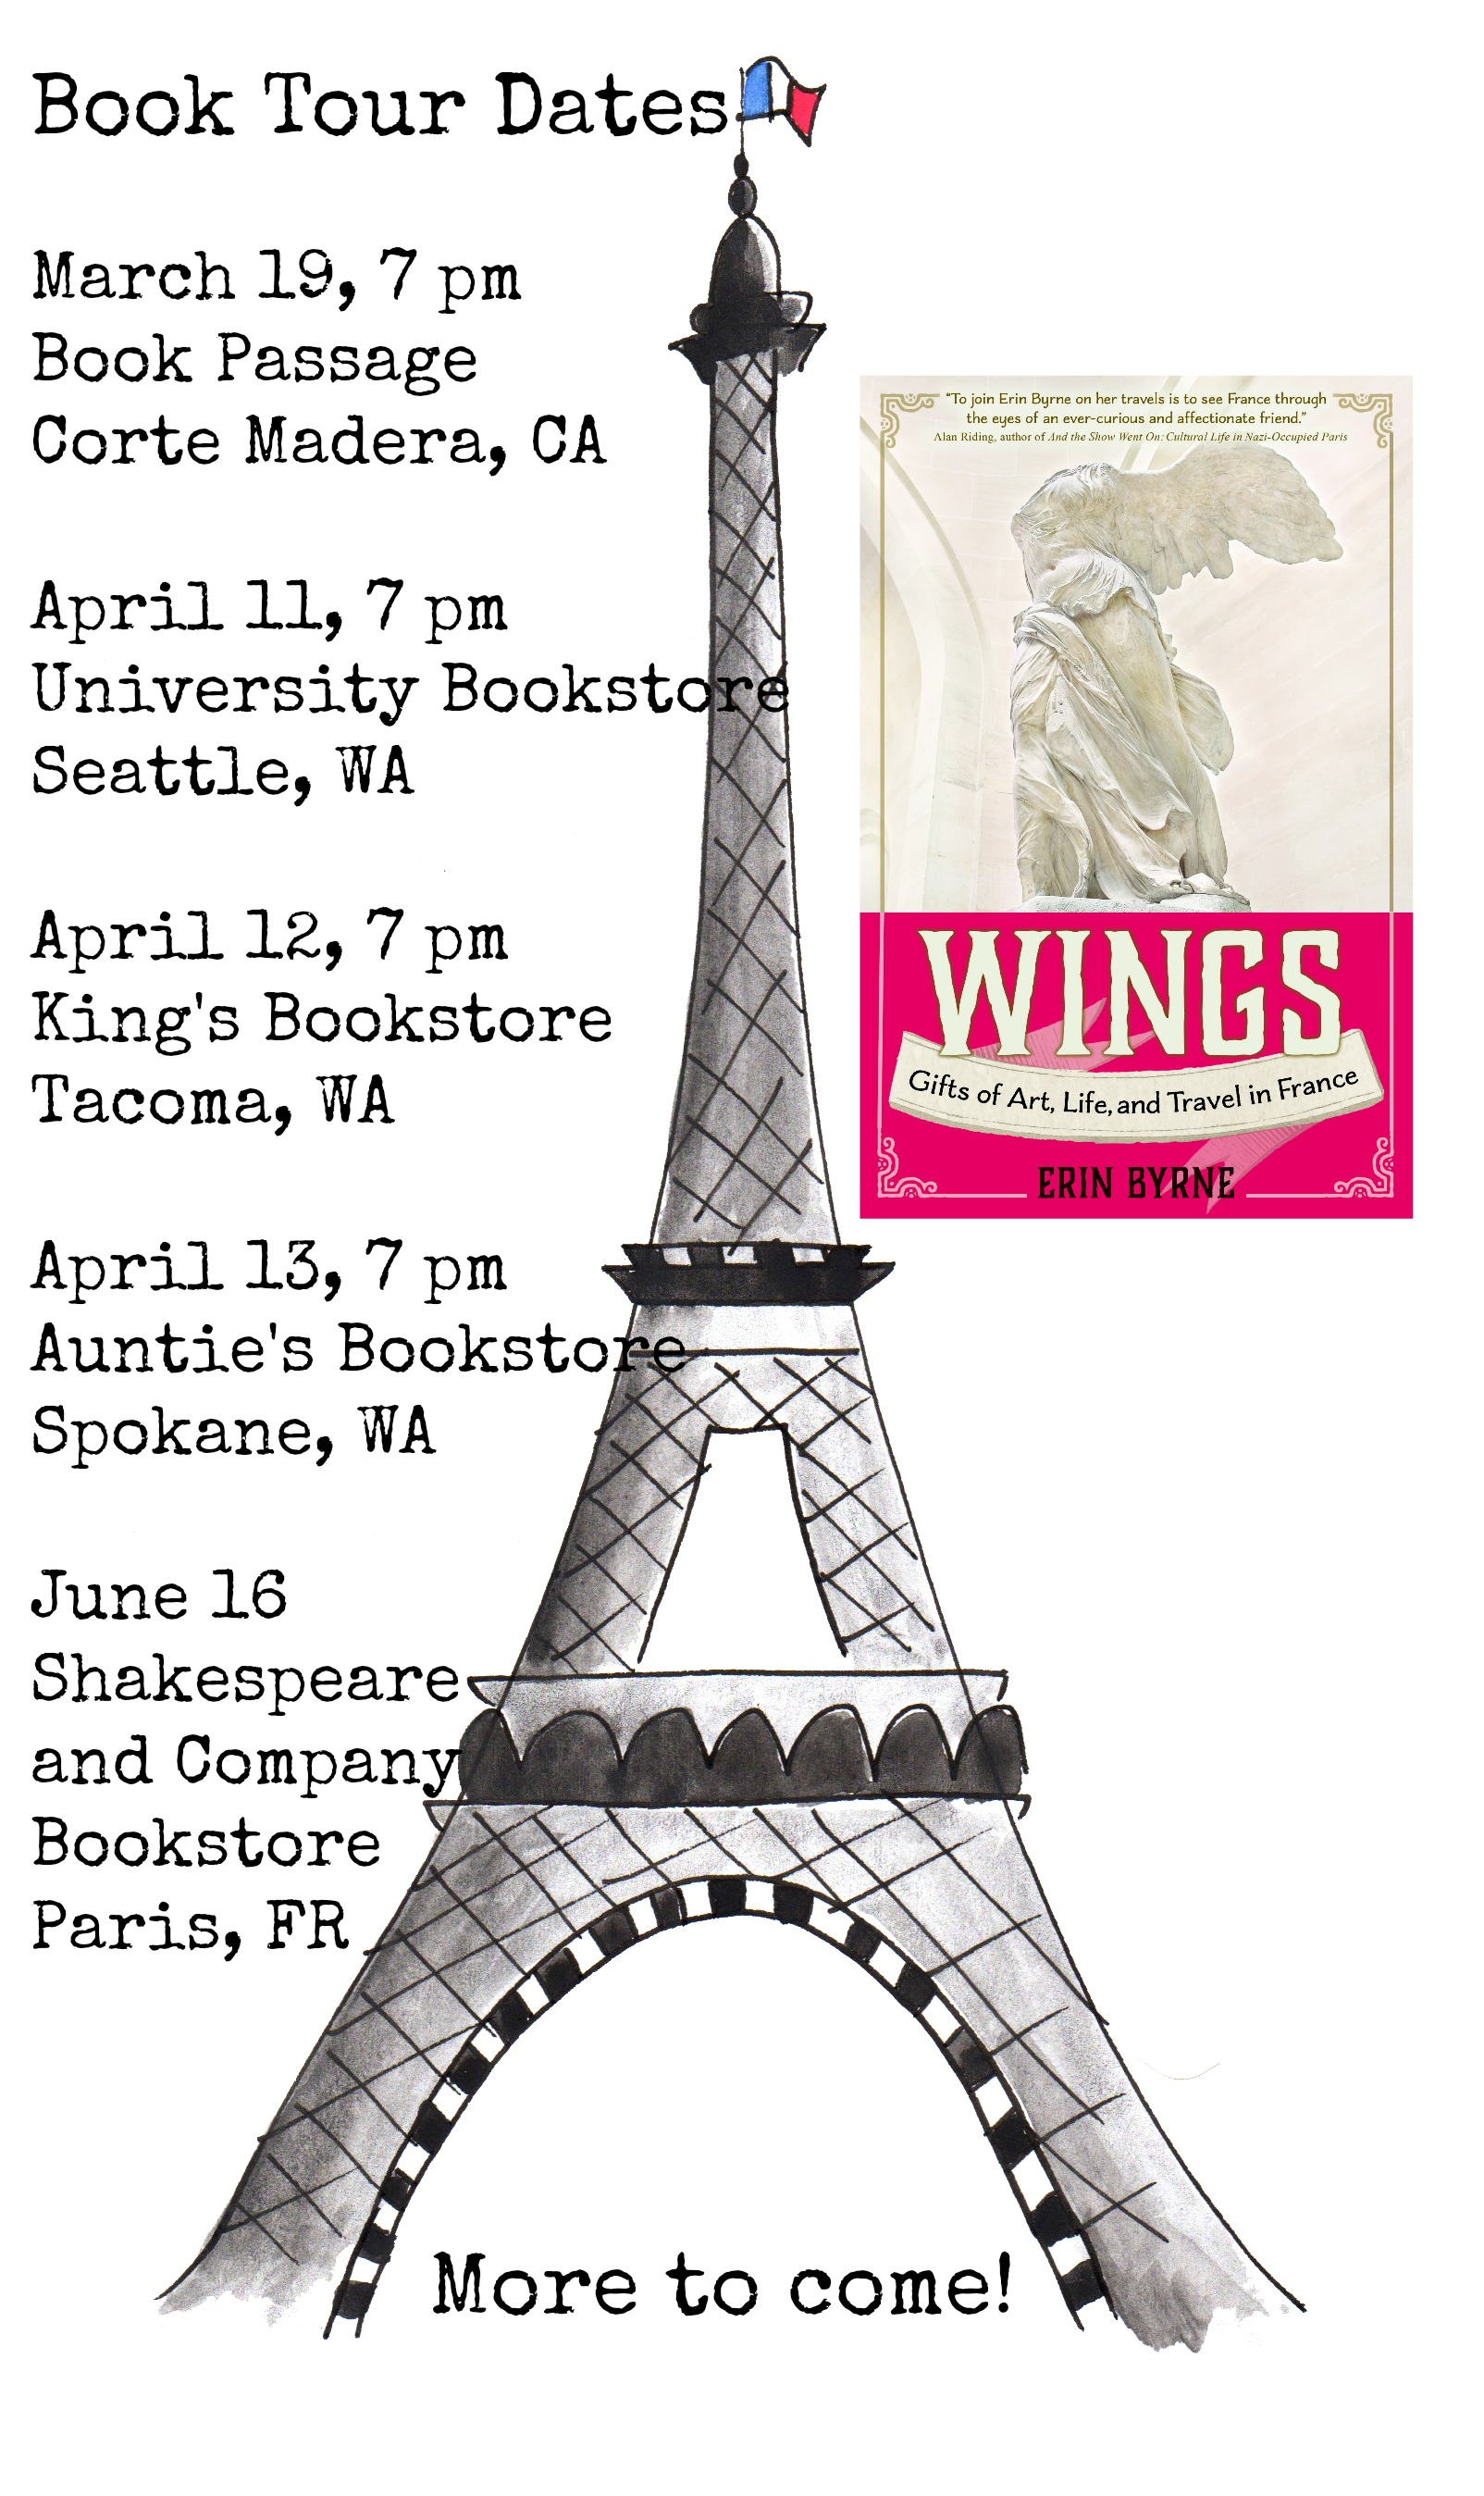 book tour dates